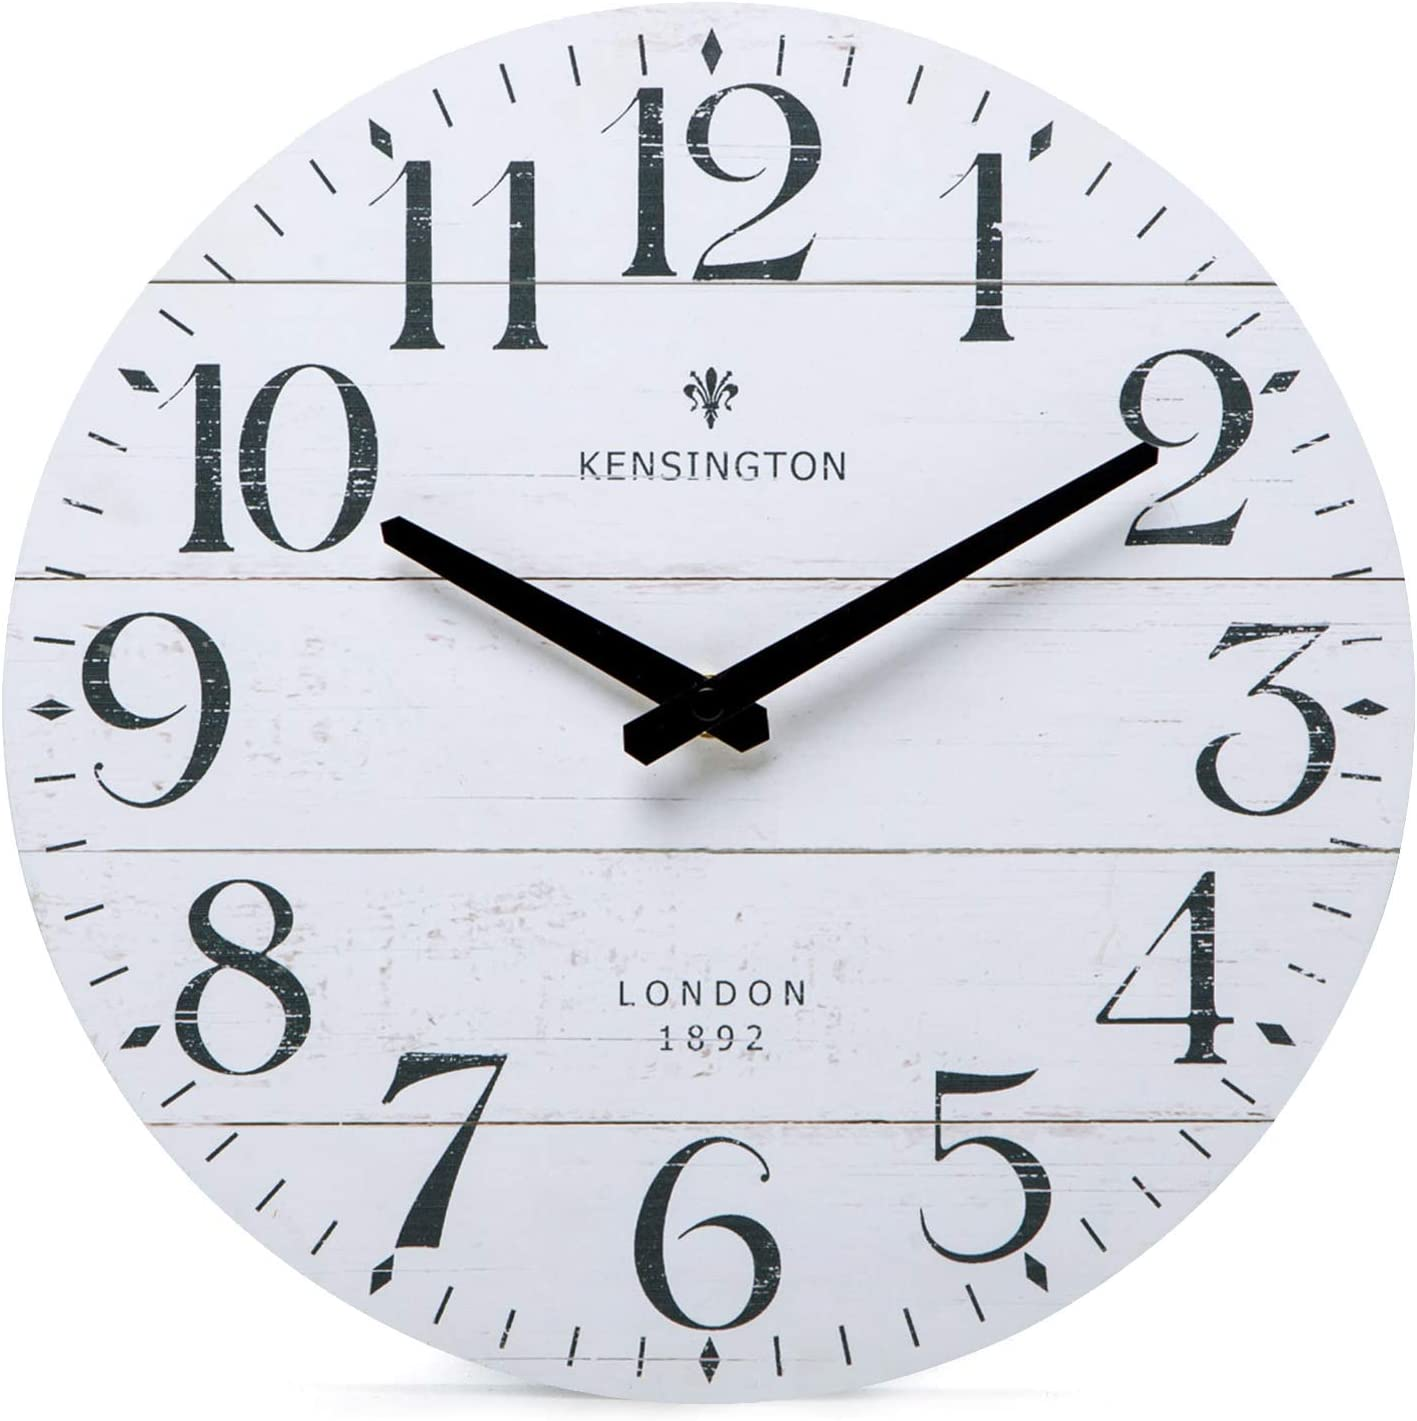 NIKKY HOME Farmhouse Wall Clock - 12 Inch Antique Silent Non Ticking Battery Operated Vintage Country Rustic Distressed White Wood Clock Home Decor for Kitchen, Living Room